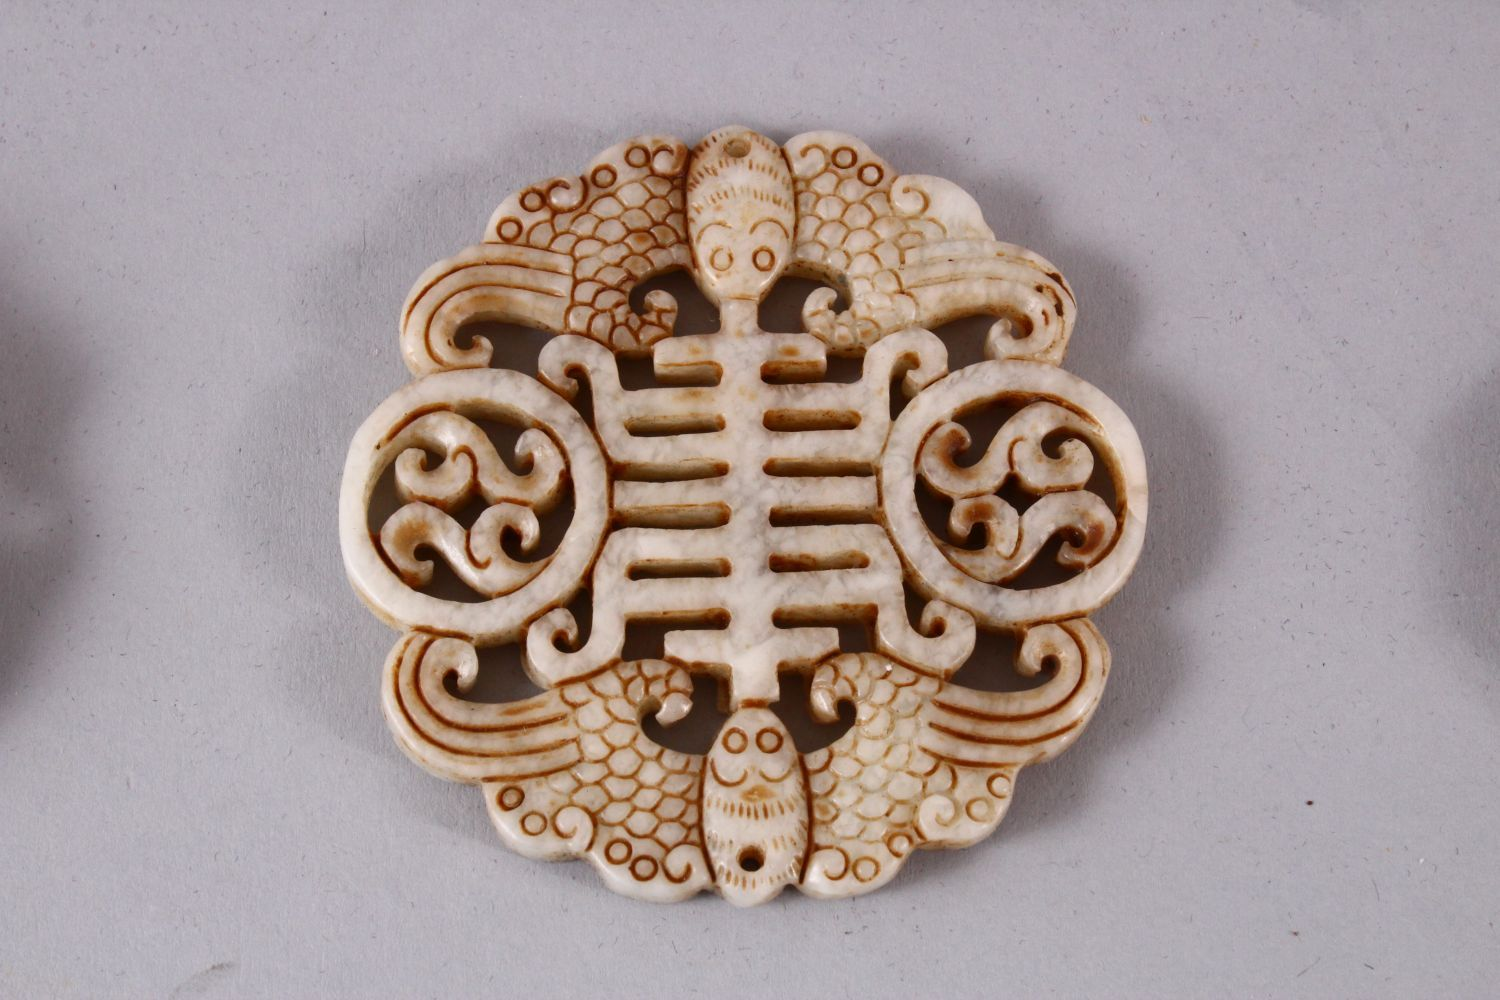 THREE CHINESE CARVED JADE PENDANTS, One carved in the form of TWIN BATS AND SYMBOLS, 6.5cm, one - Image 3 of 5